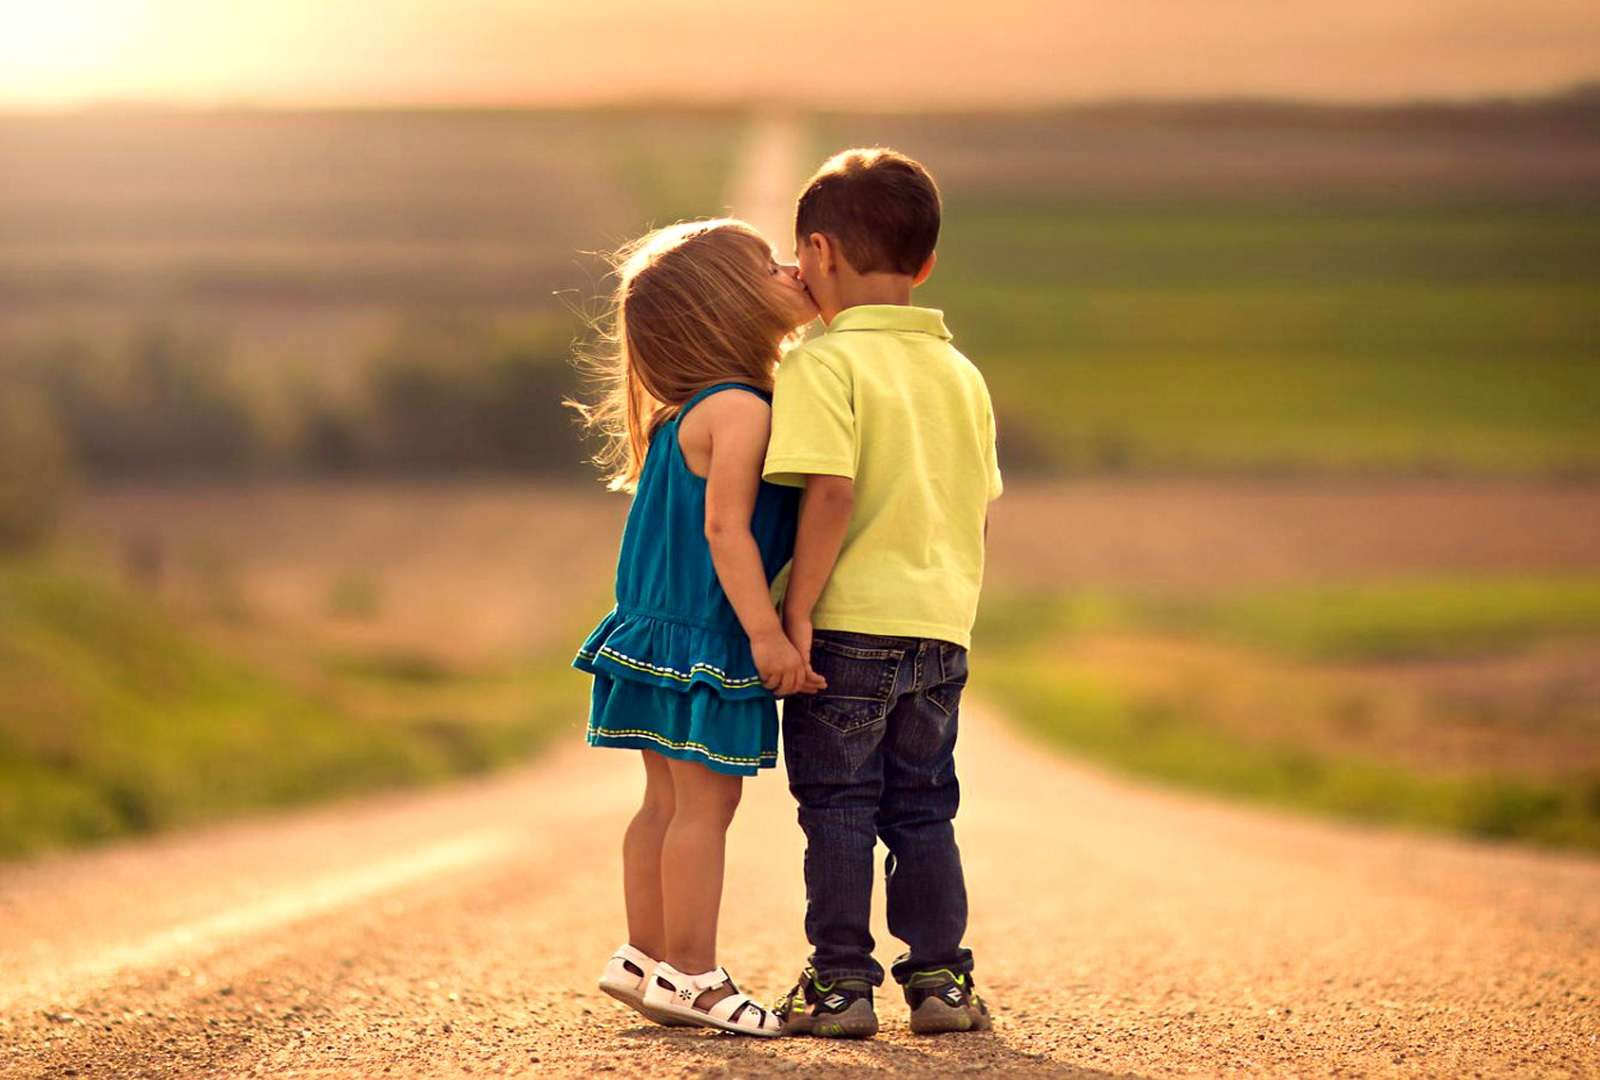 Cute Baby Couple Images With Quotes Smile